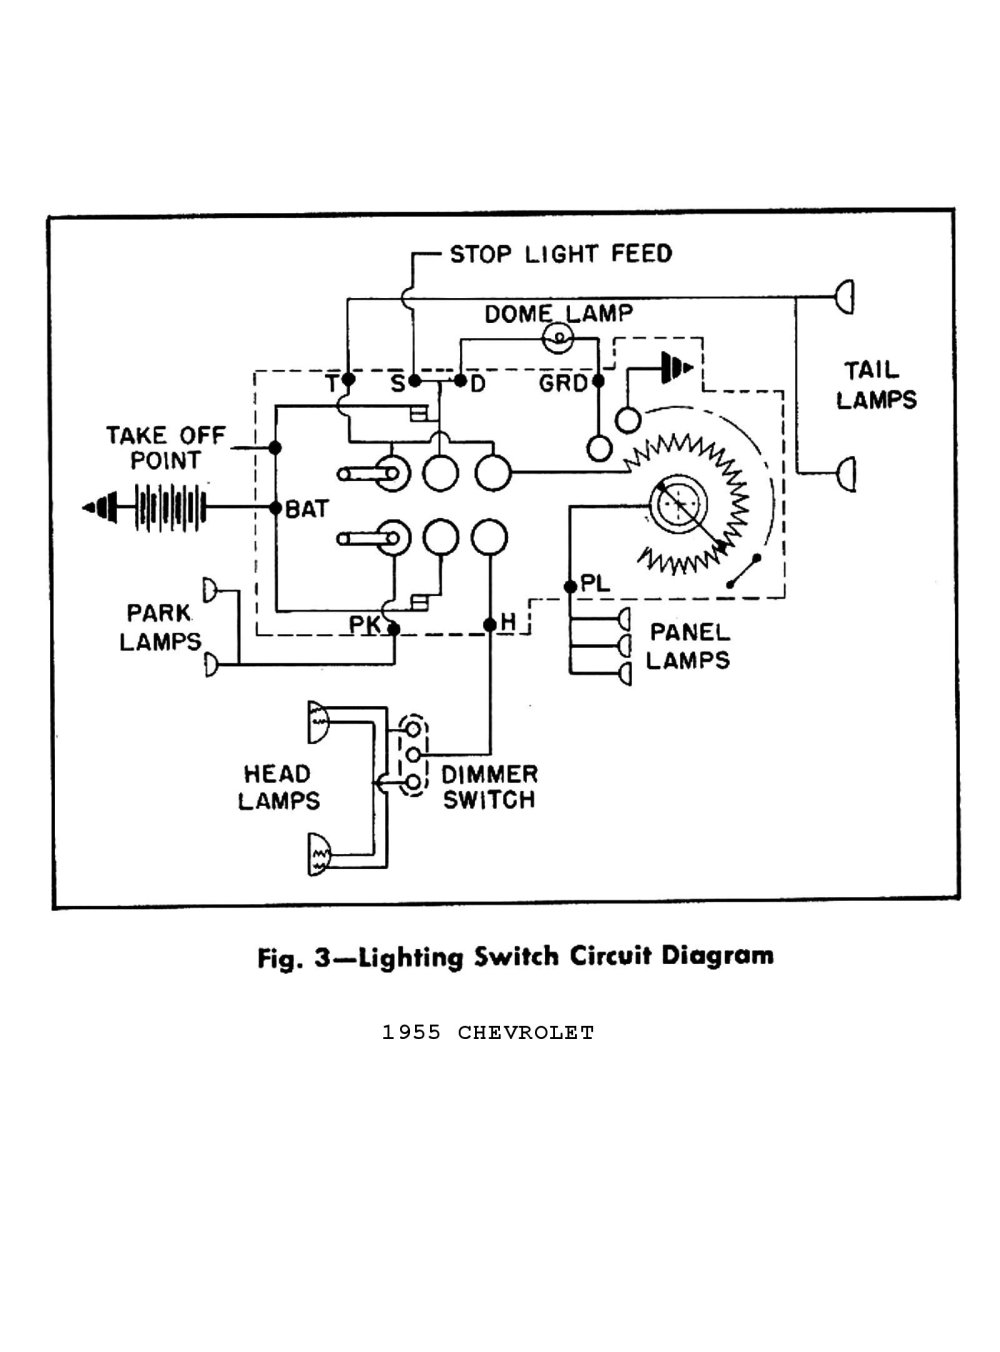 medium resolution of arr ignition switch wiring diagram wiring diagram preview 1941 chrysler ignition switch wiring